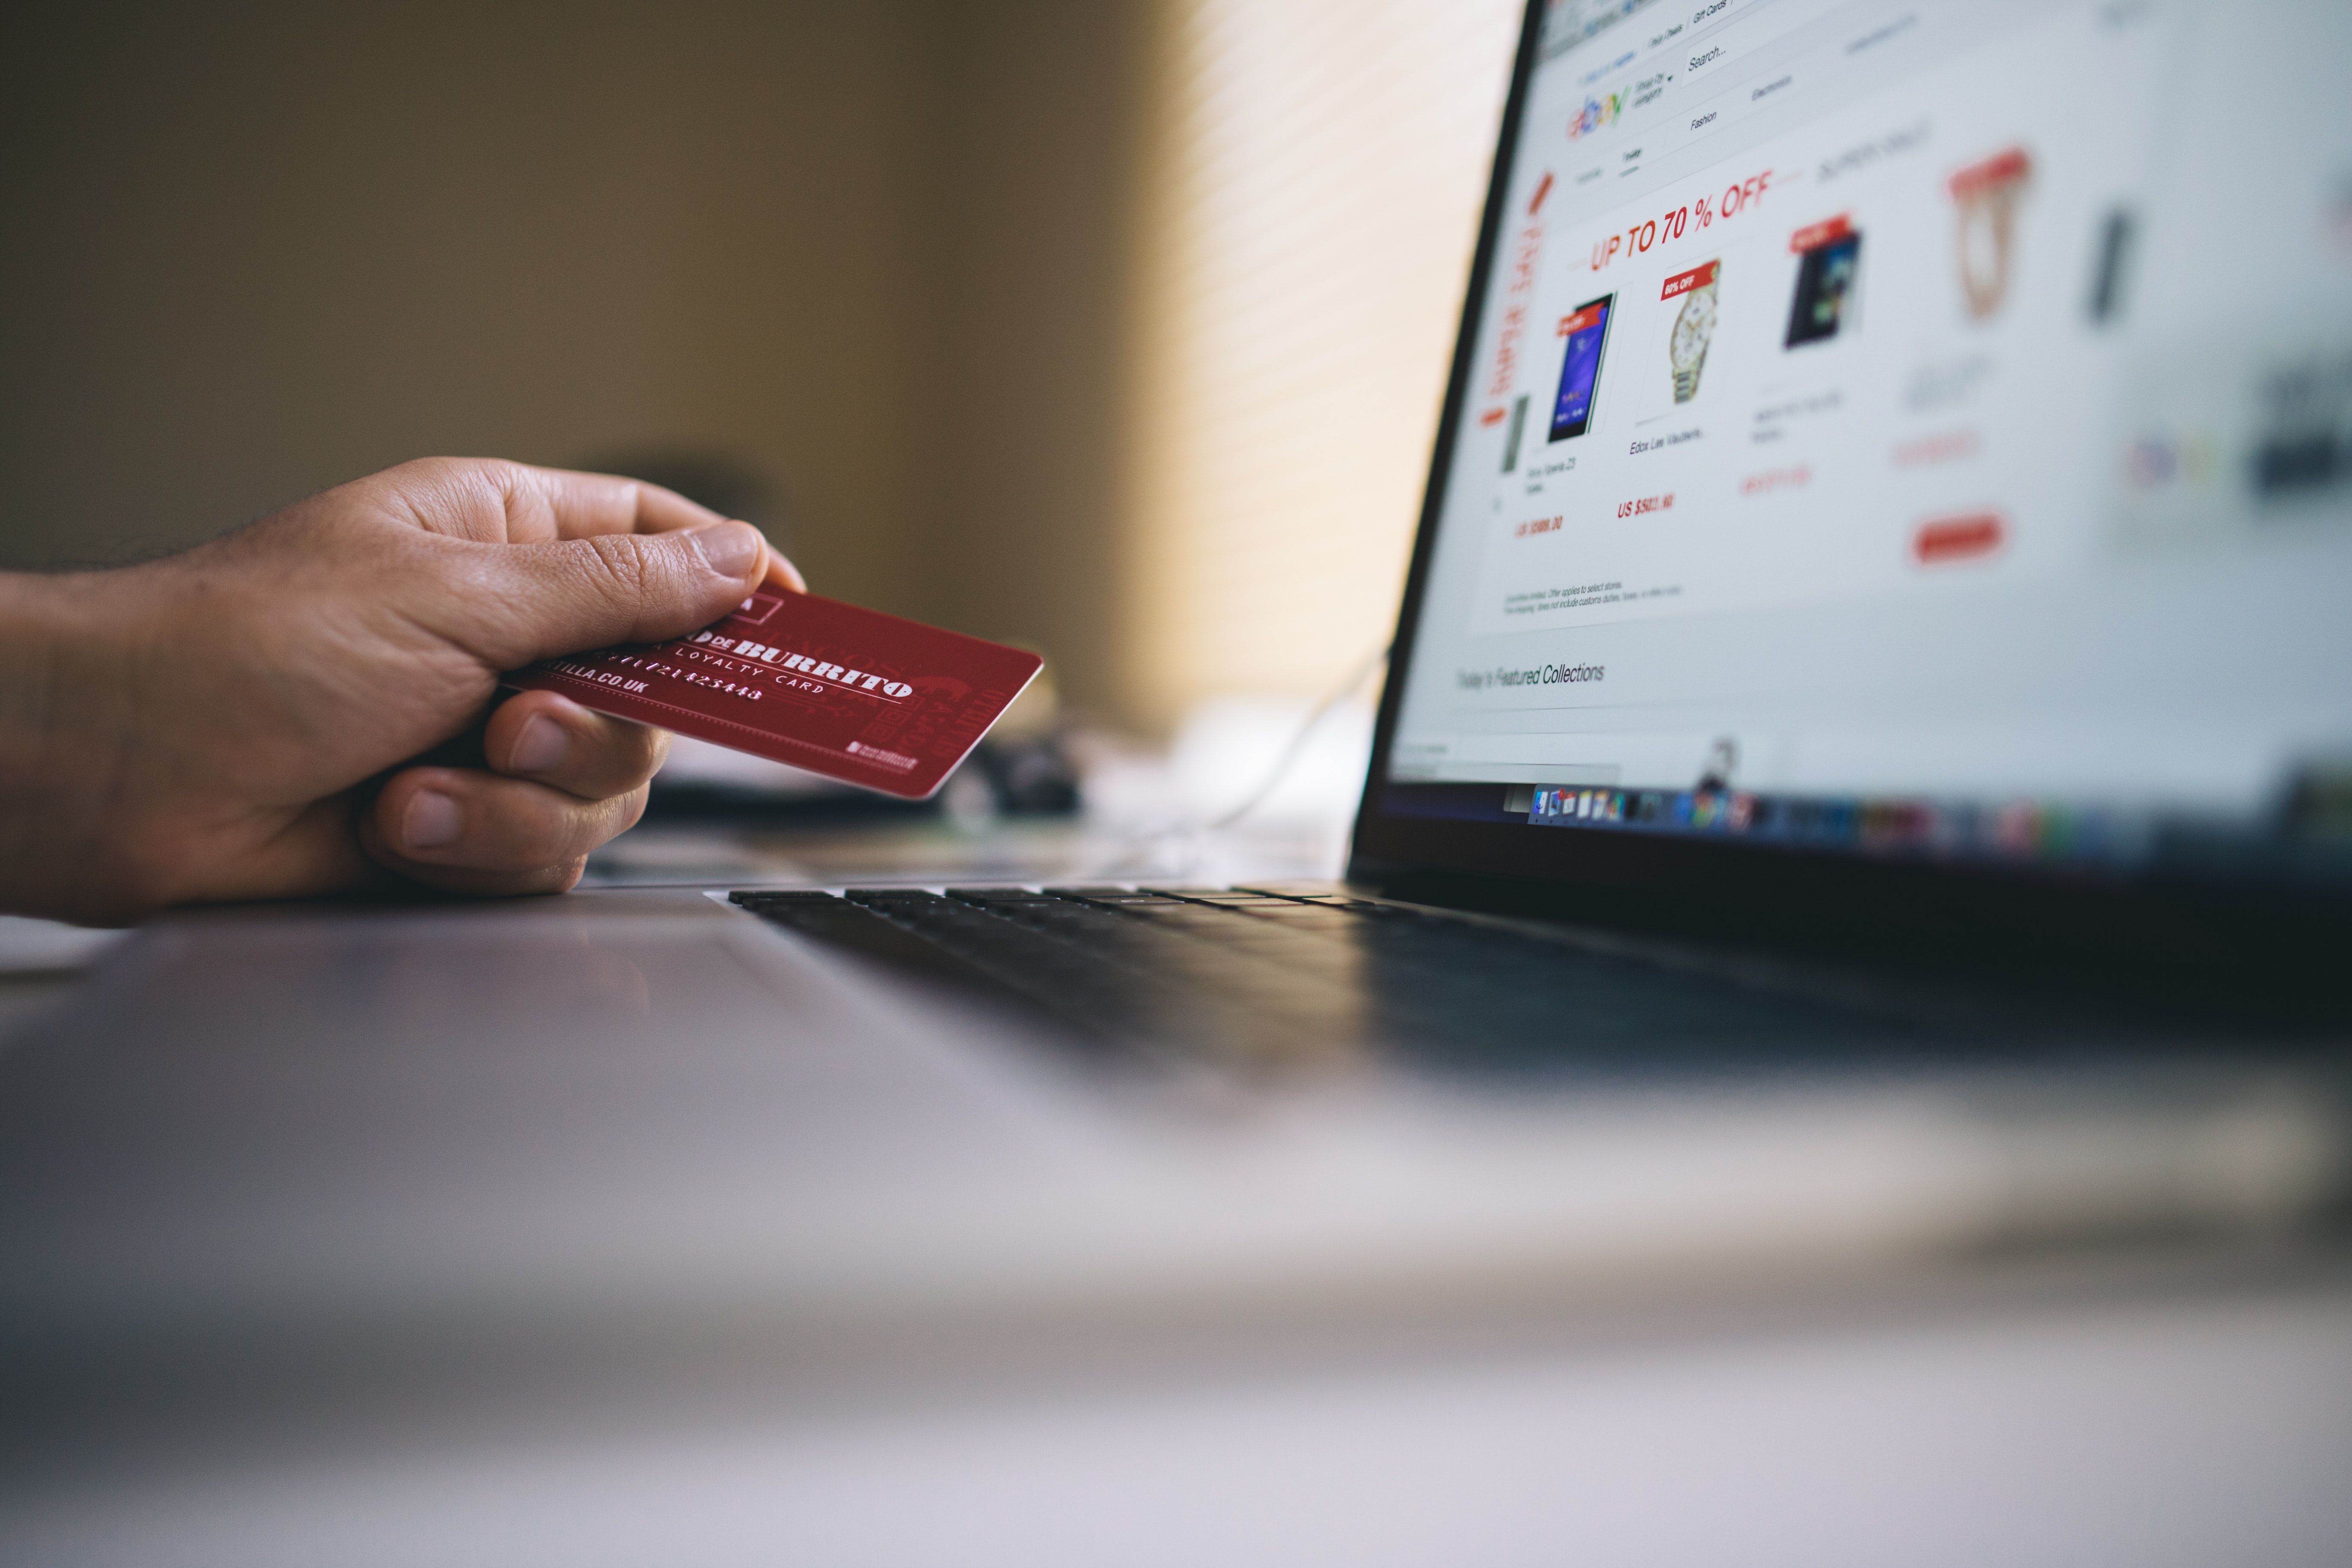 buying stuff online with credit card